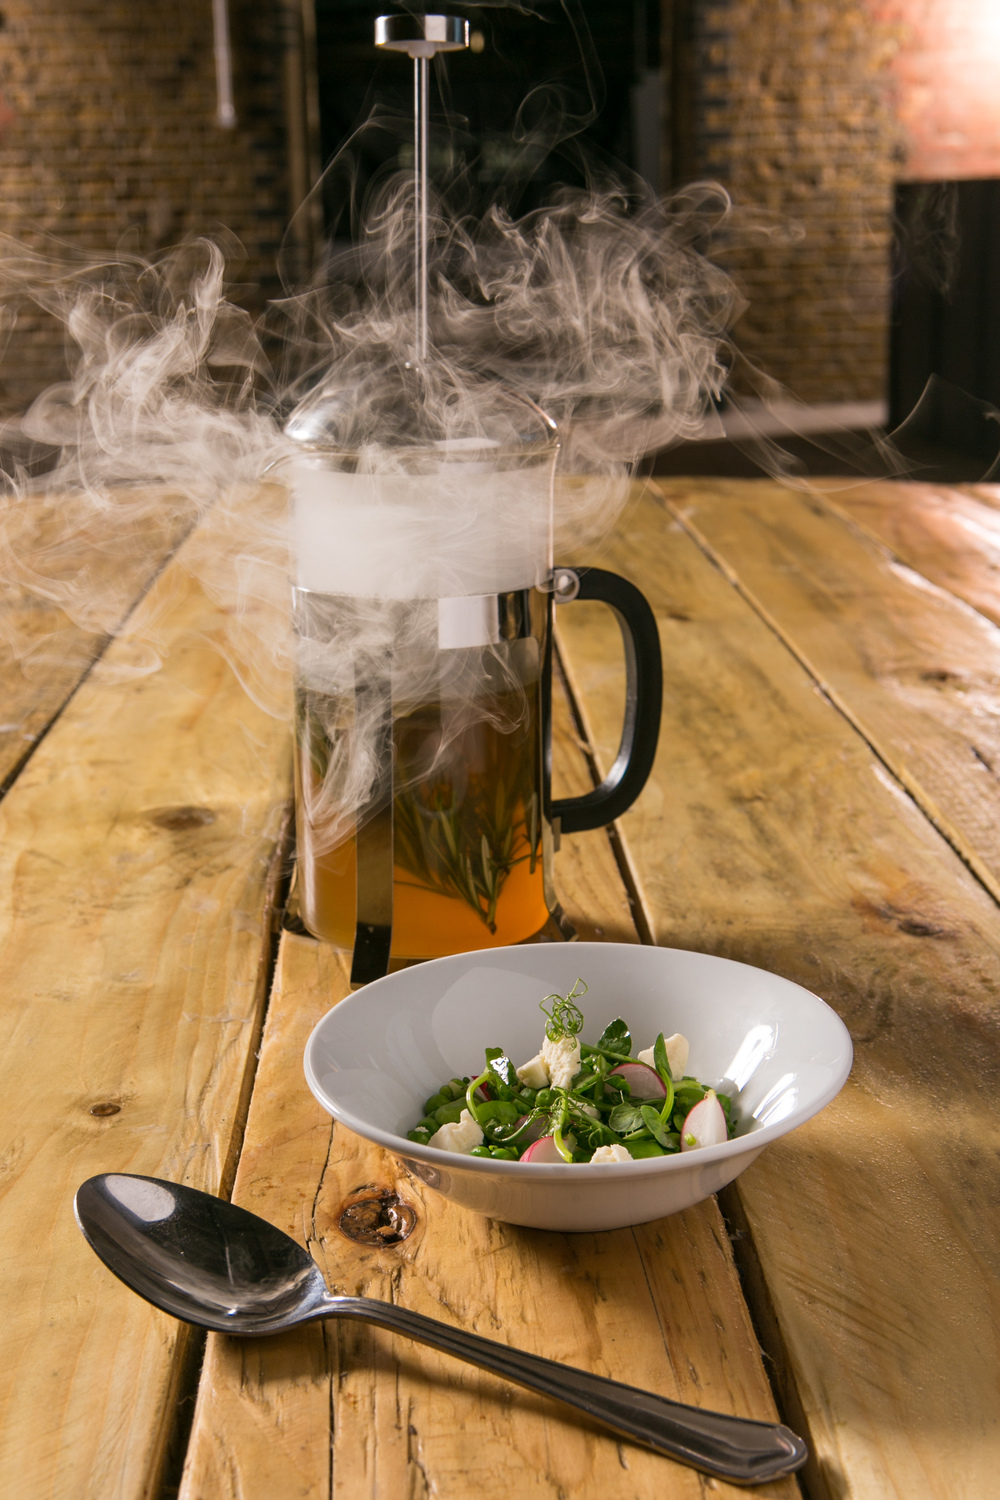 Smokin'_Onion_Broth_with_Peas_&_Cheese_3_Credit-BenCarpenter.jpg